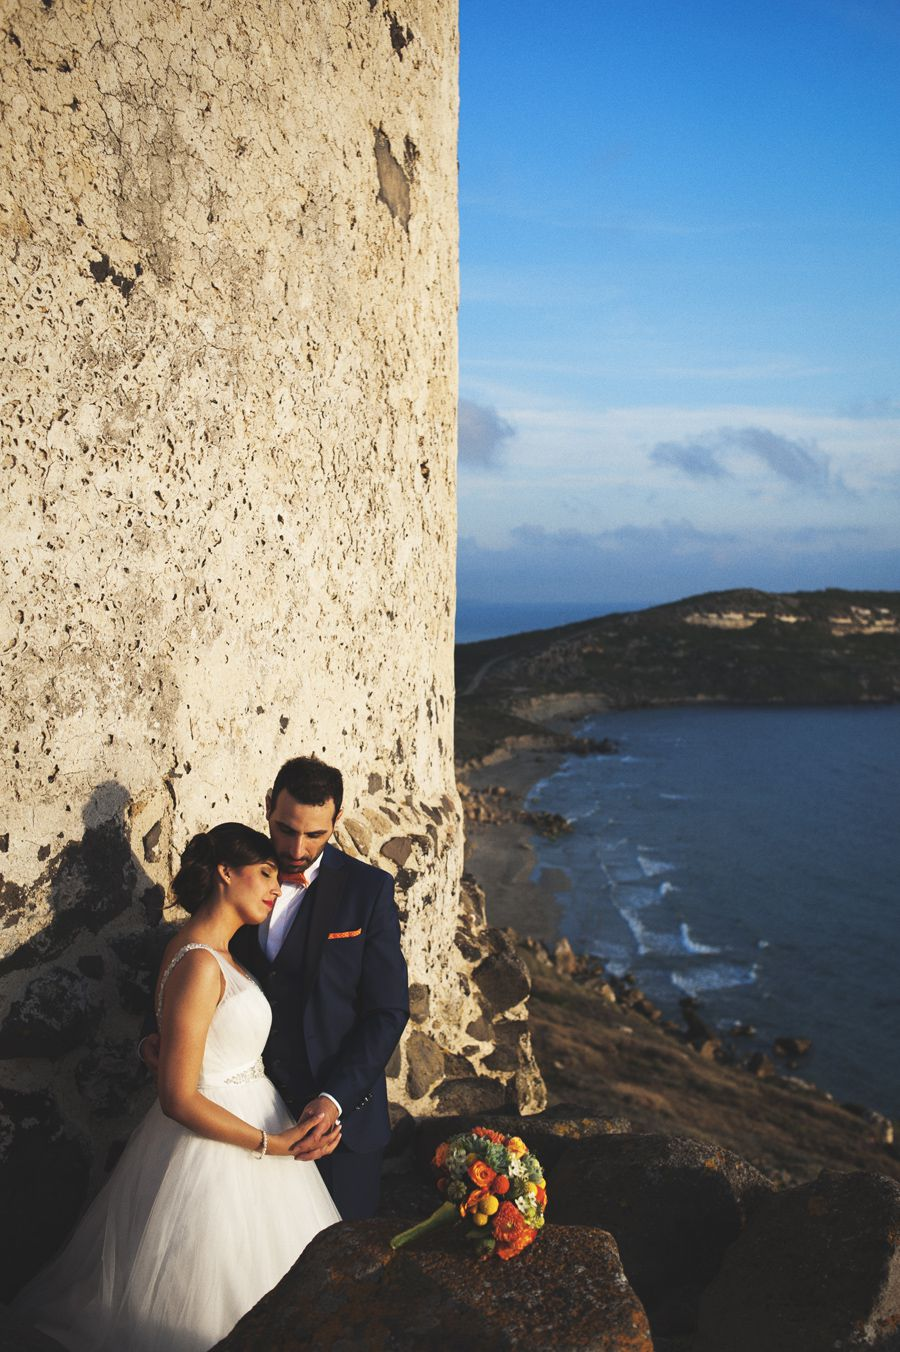 Marriage in tharros